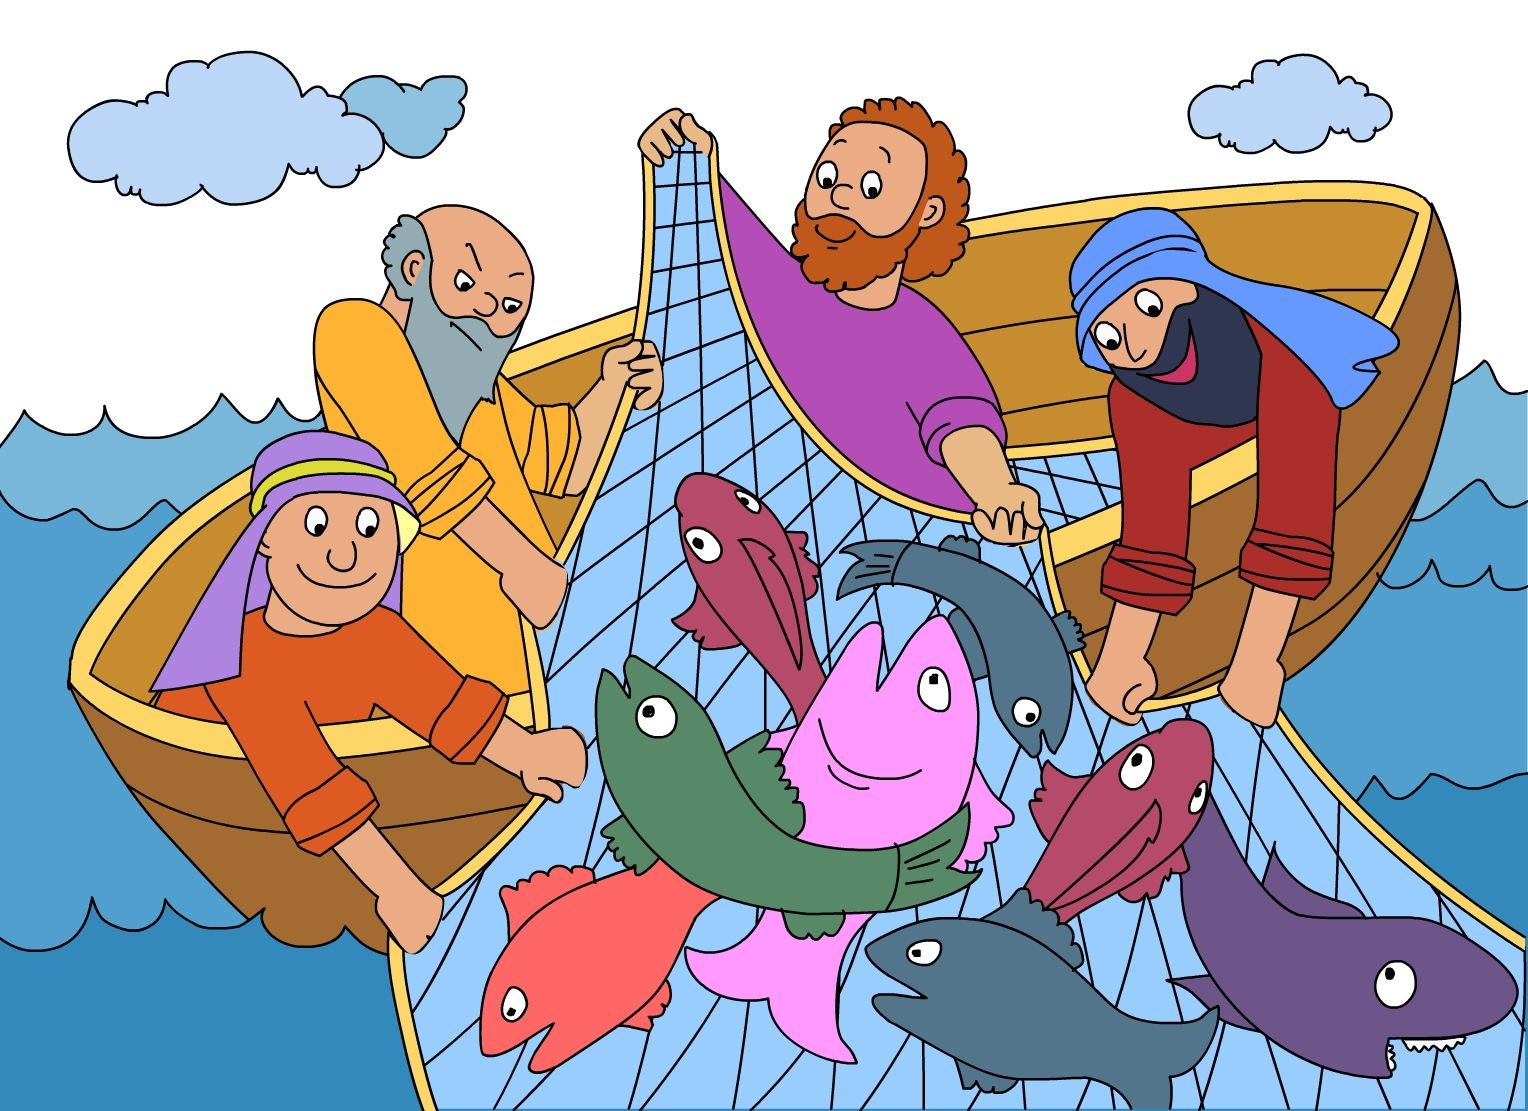 This Is The Net Full Of Fish Bible Story And Activities Of